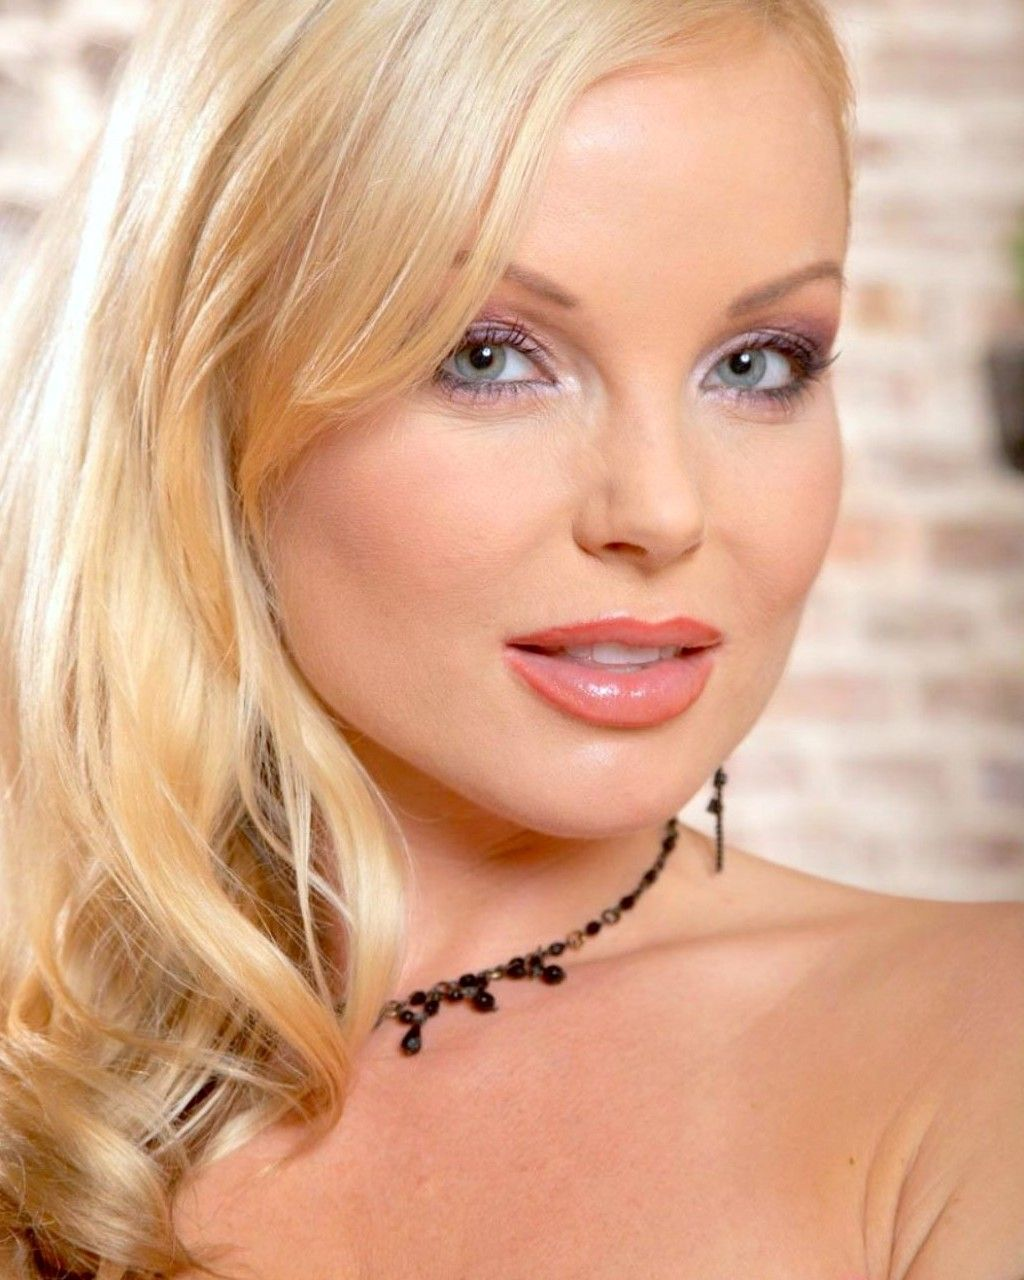 silvia saint silvia-saint_3dbc2685.jpg (1024×1280)   Silvia Saint   Pinterest   Silvia  saint, Wallpapers and Image search